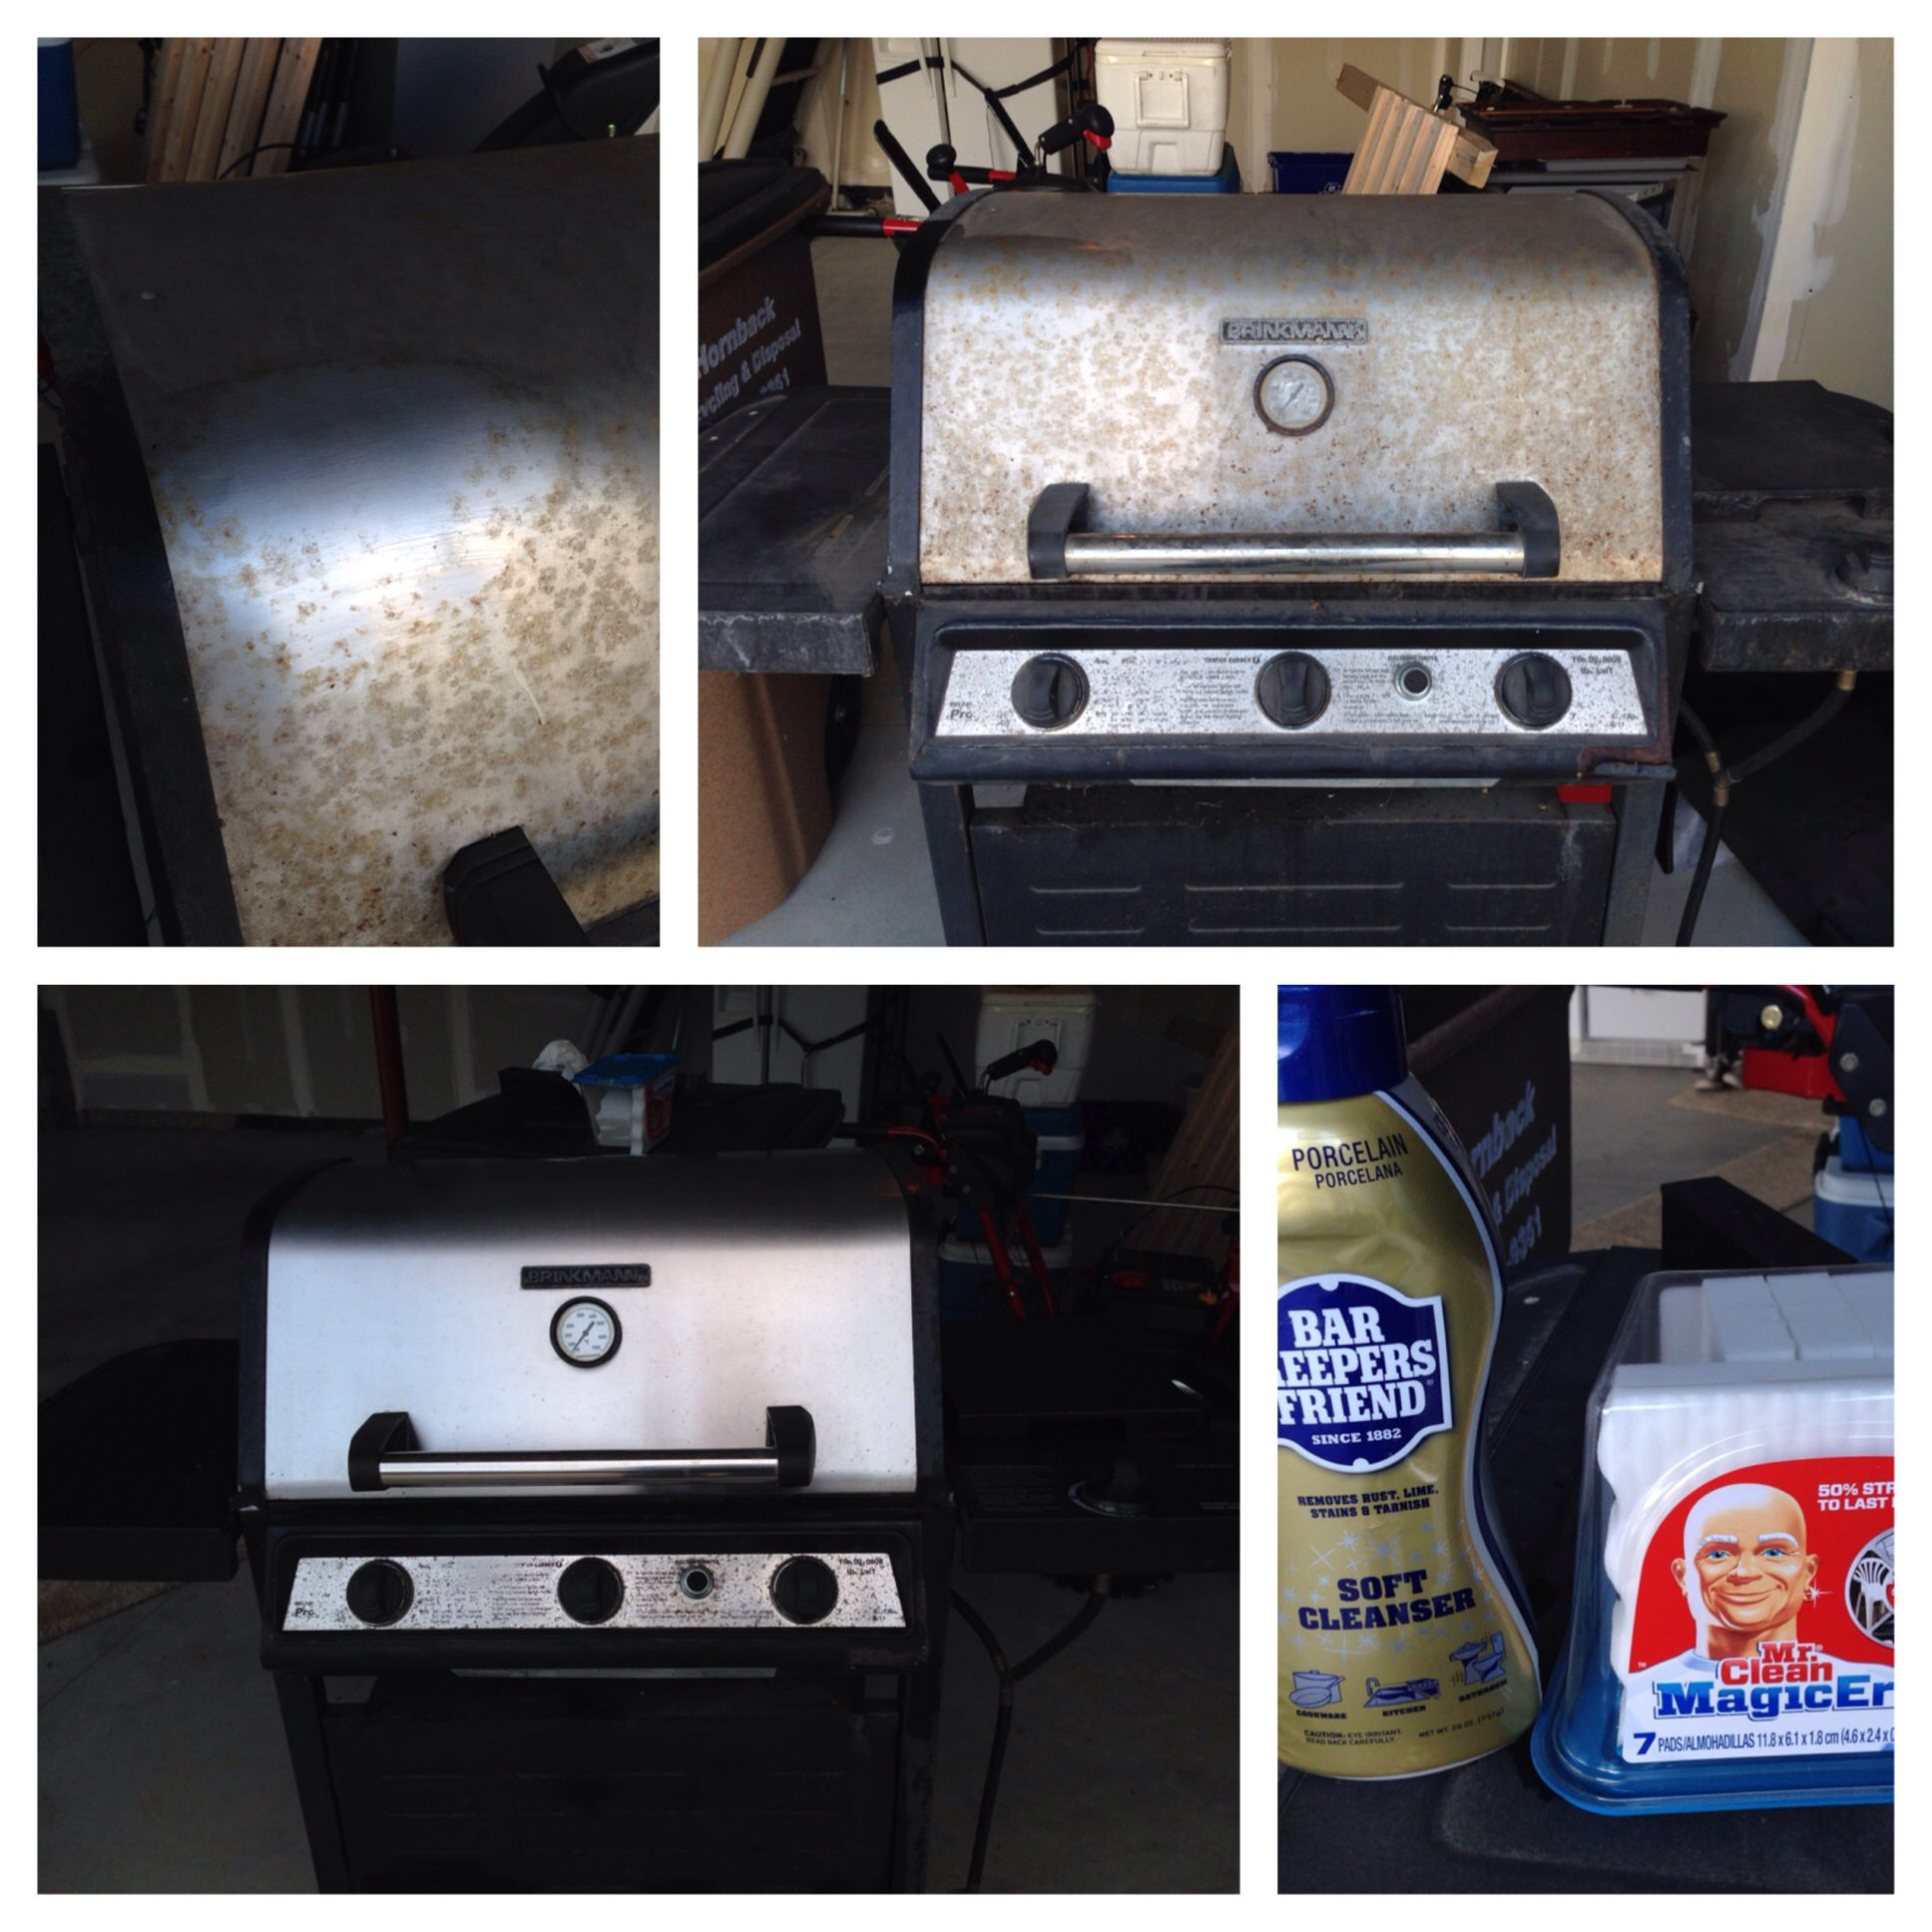 A great before and after of a grill cleaned by Bar Keepers Friend